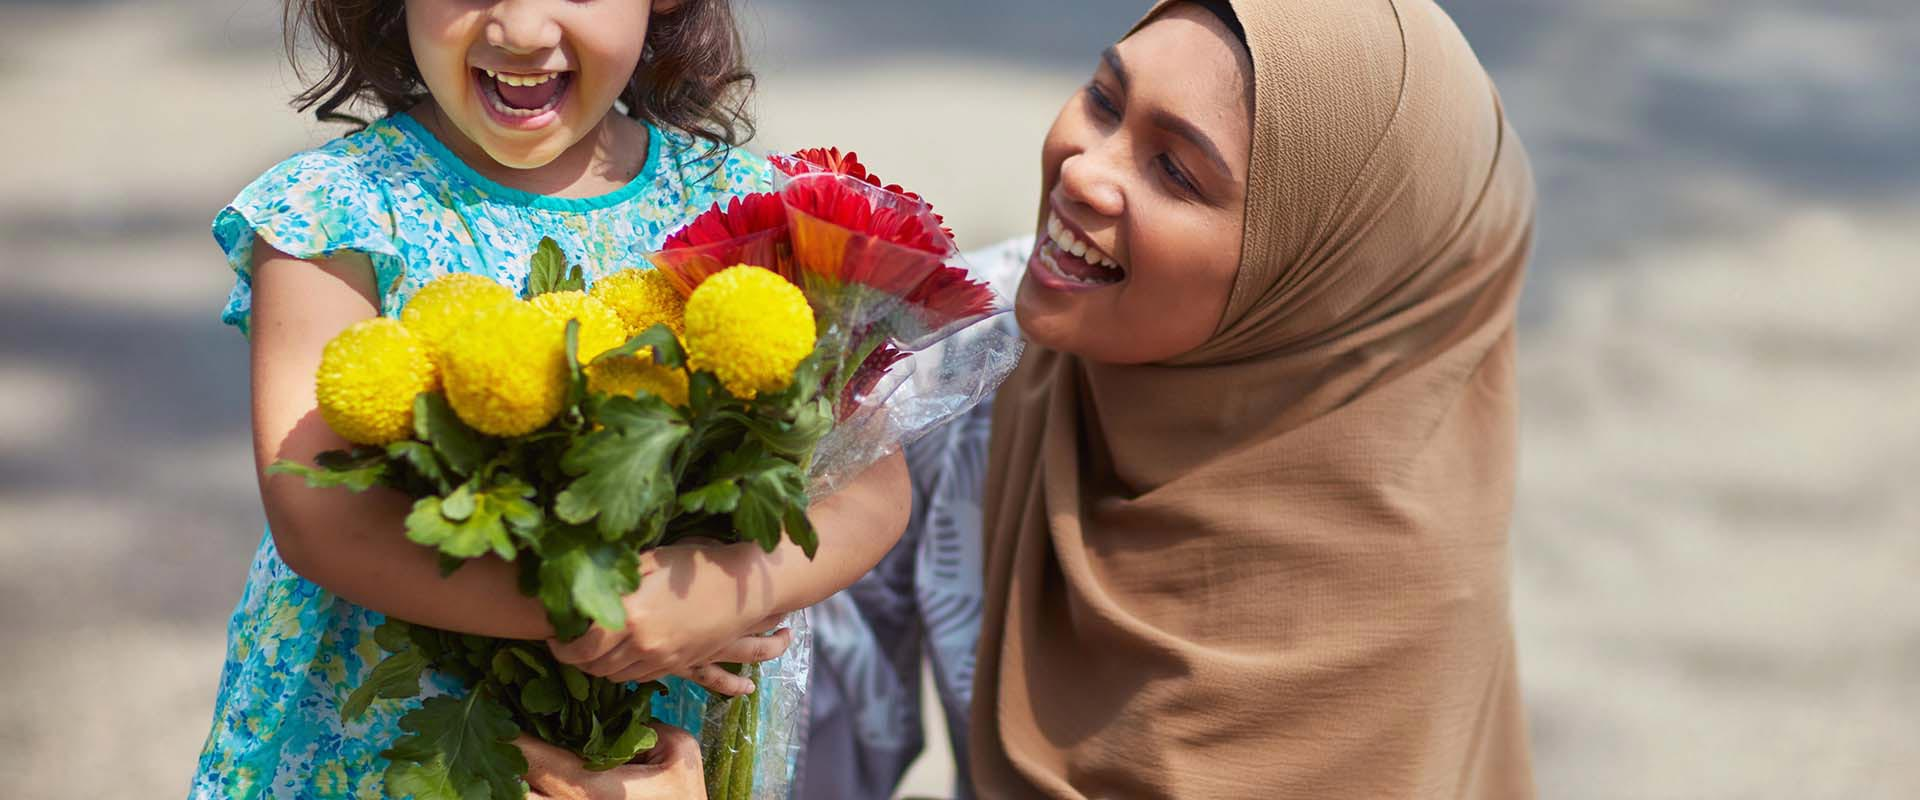 What date is mothers day 2019 in Melbourne